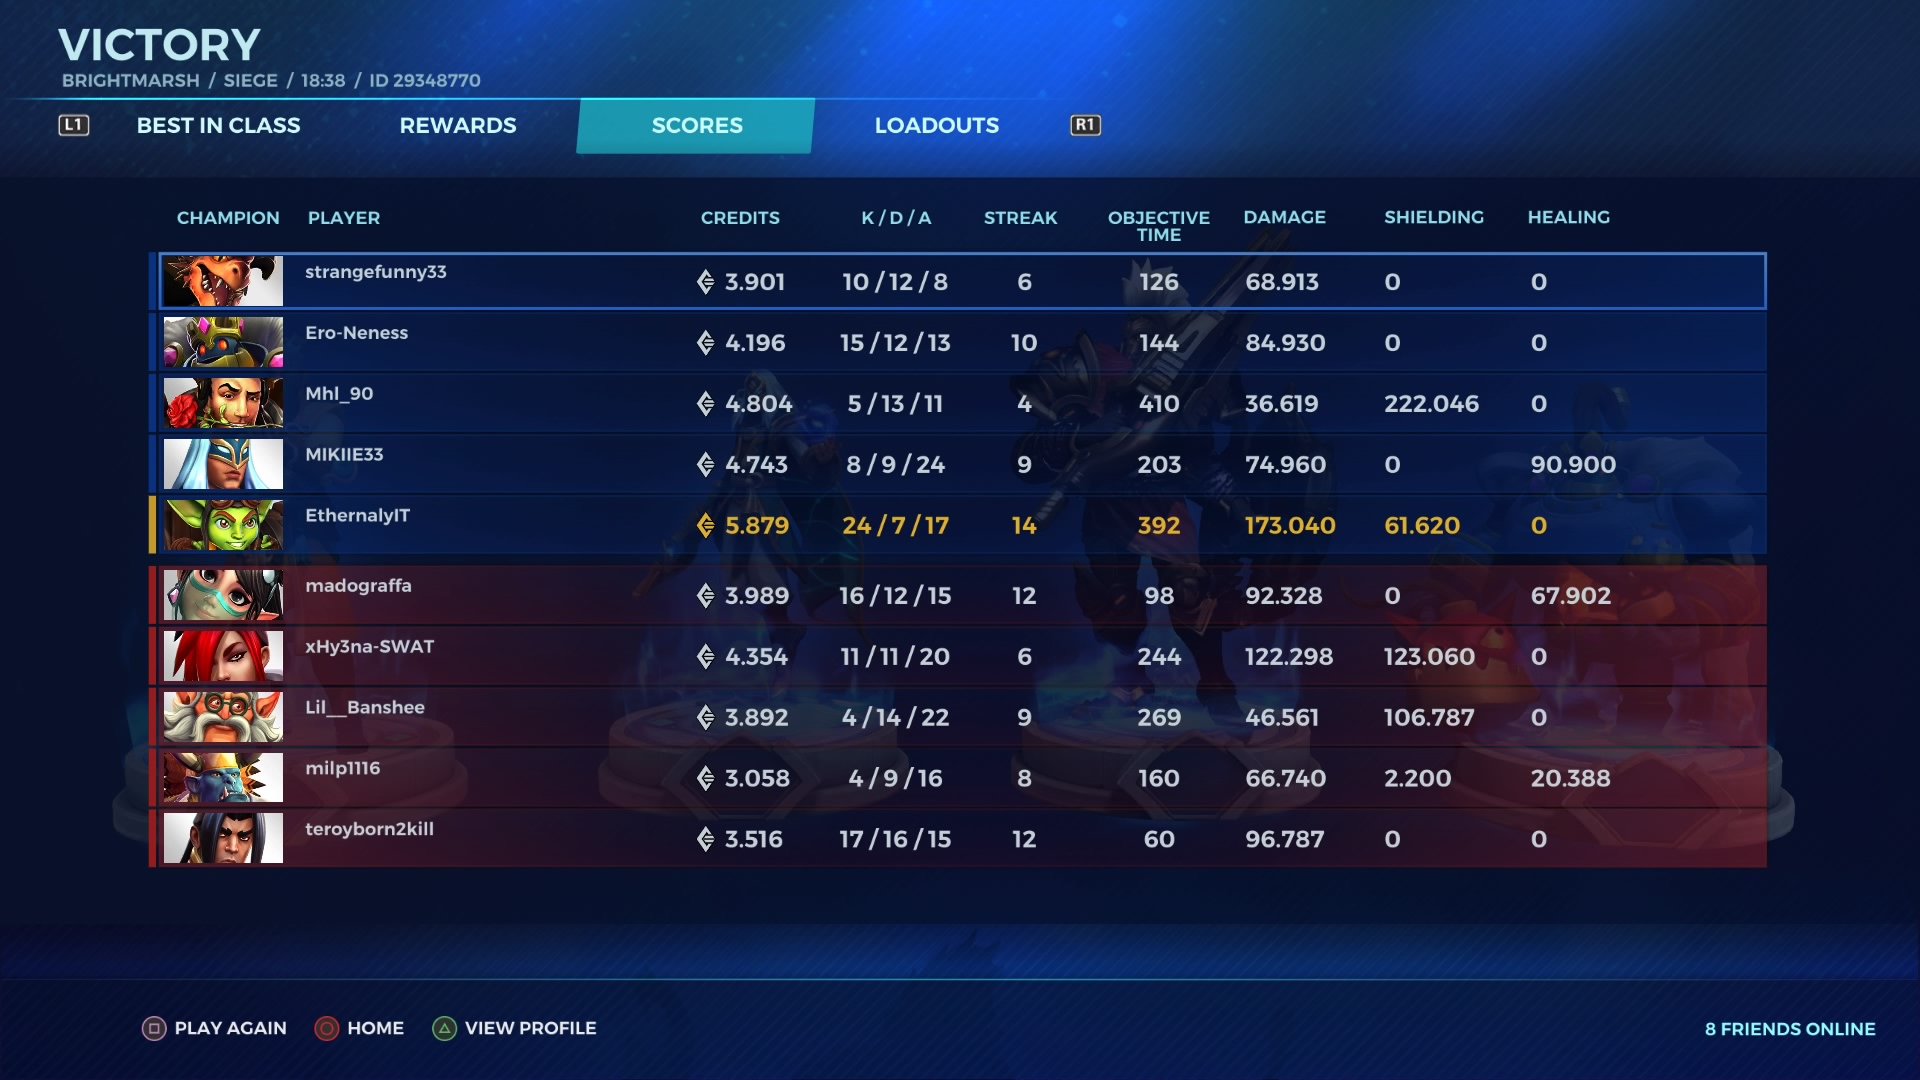 Ethernaly.it - Paladins PS4, doppio tank con Mhl_90